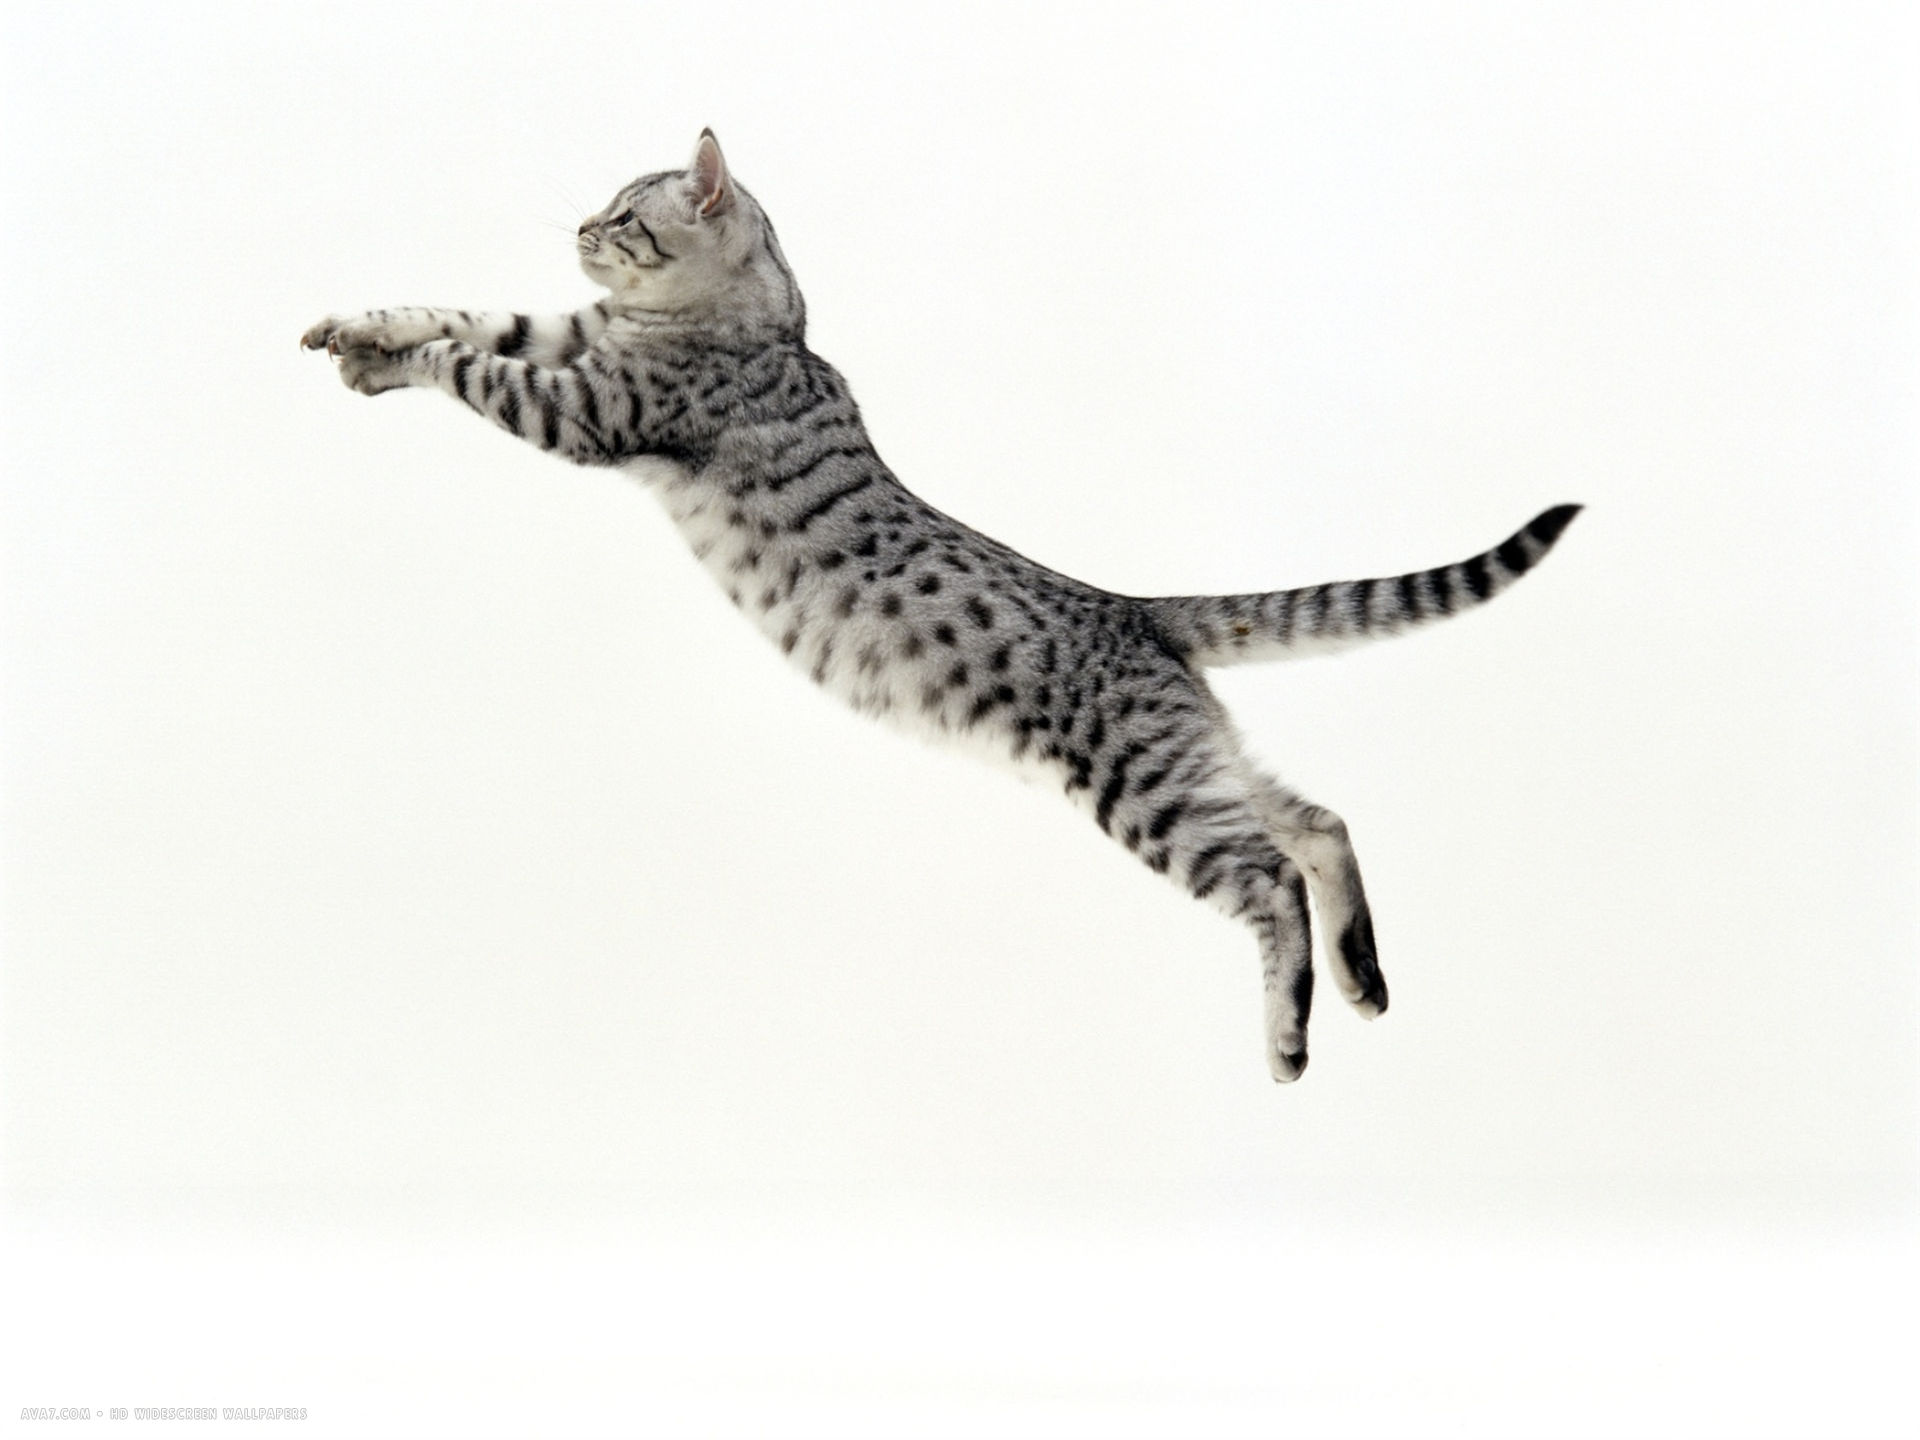 5 month silver spotted shorthair male jumping at full stretch back hollow